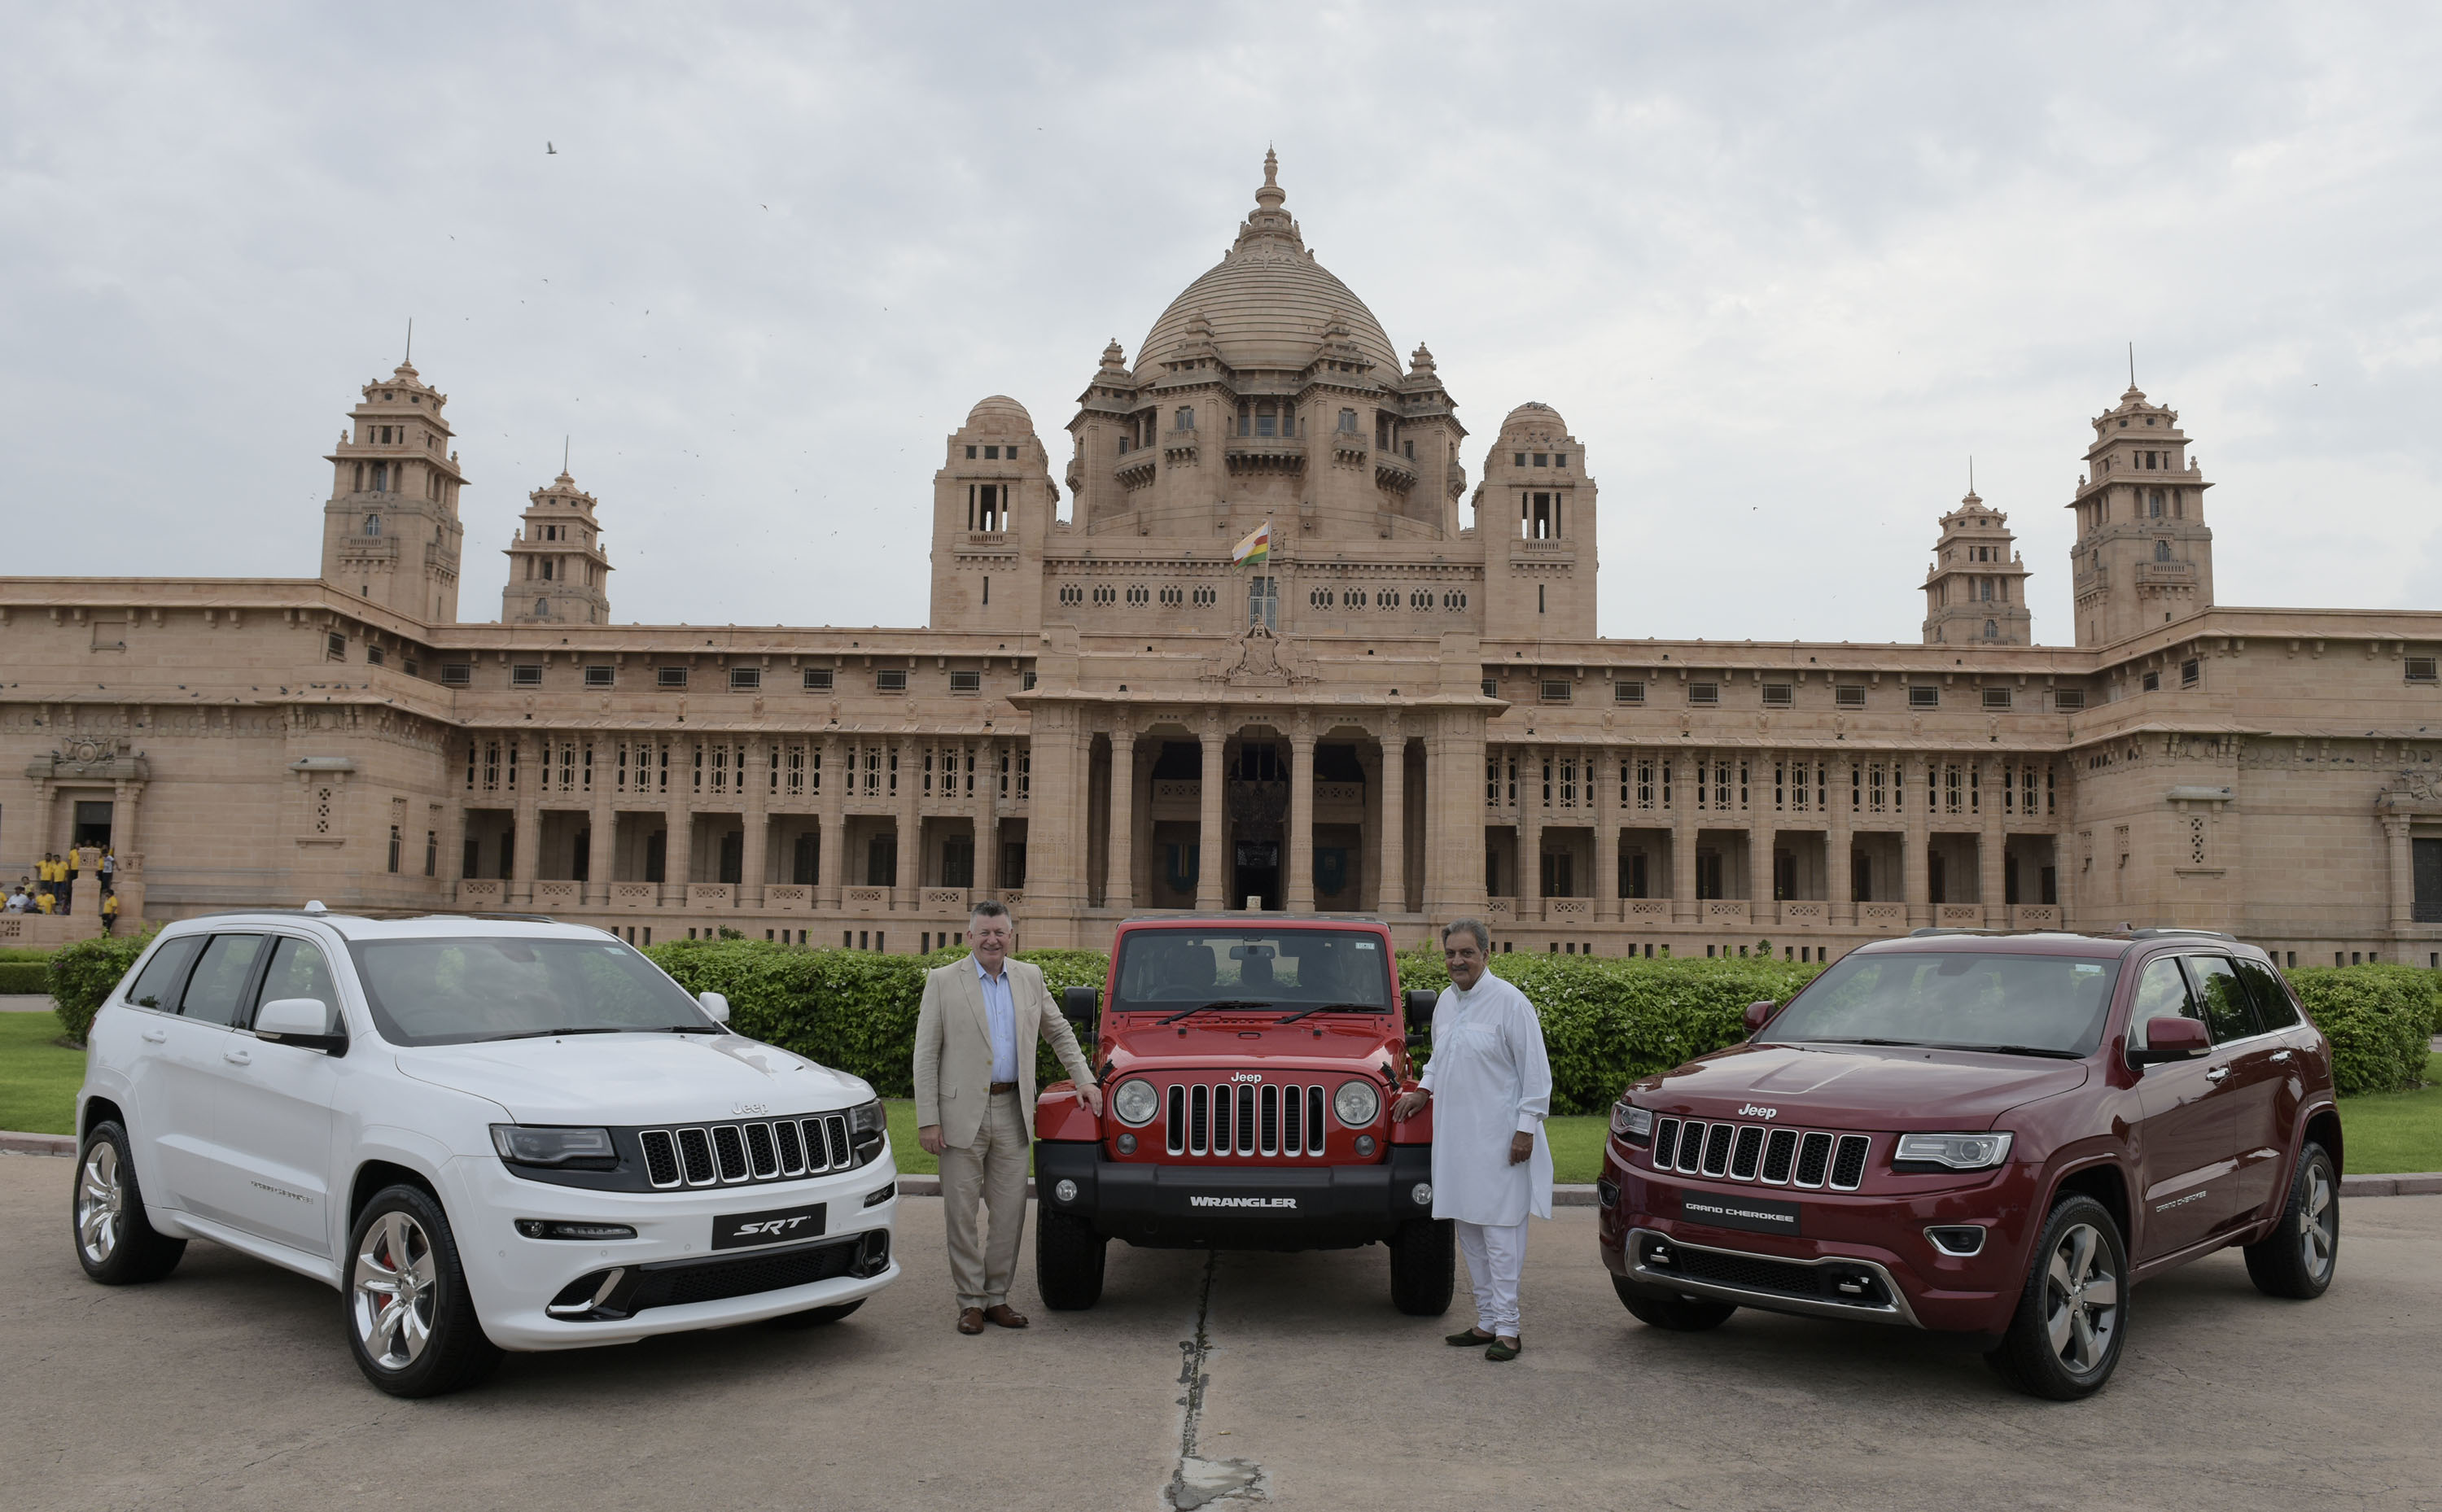 Jeep India Price List Price of Wrangler Price of Grand Cherokee in